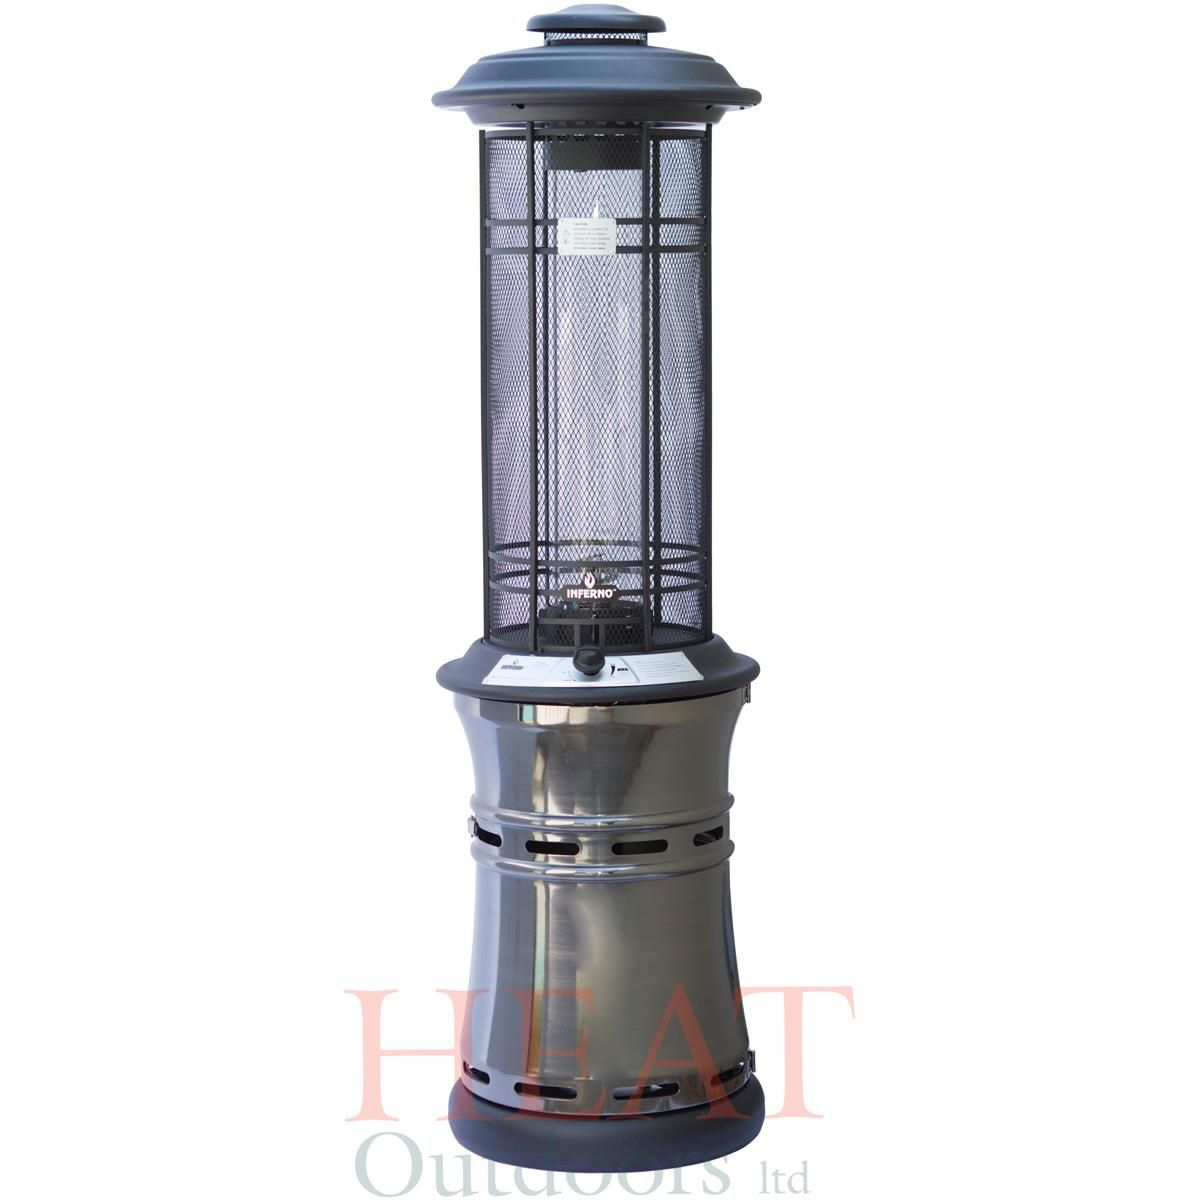 Santorini Spiral Flame Gas Patio Heater Gas Patio Heater intended for sizing 1200 X 1200